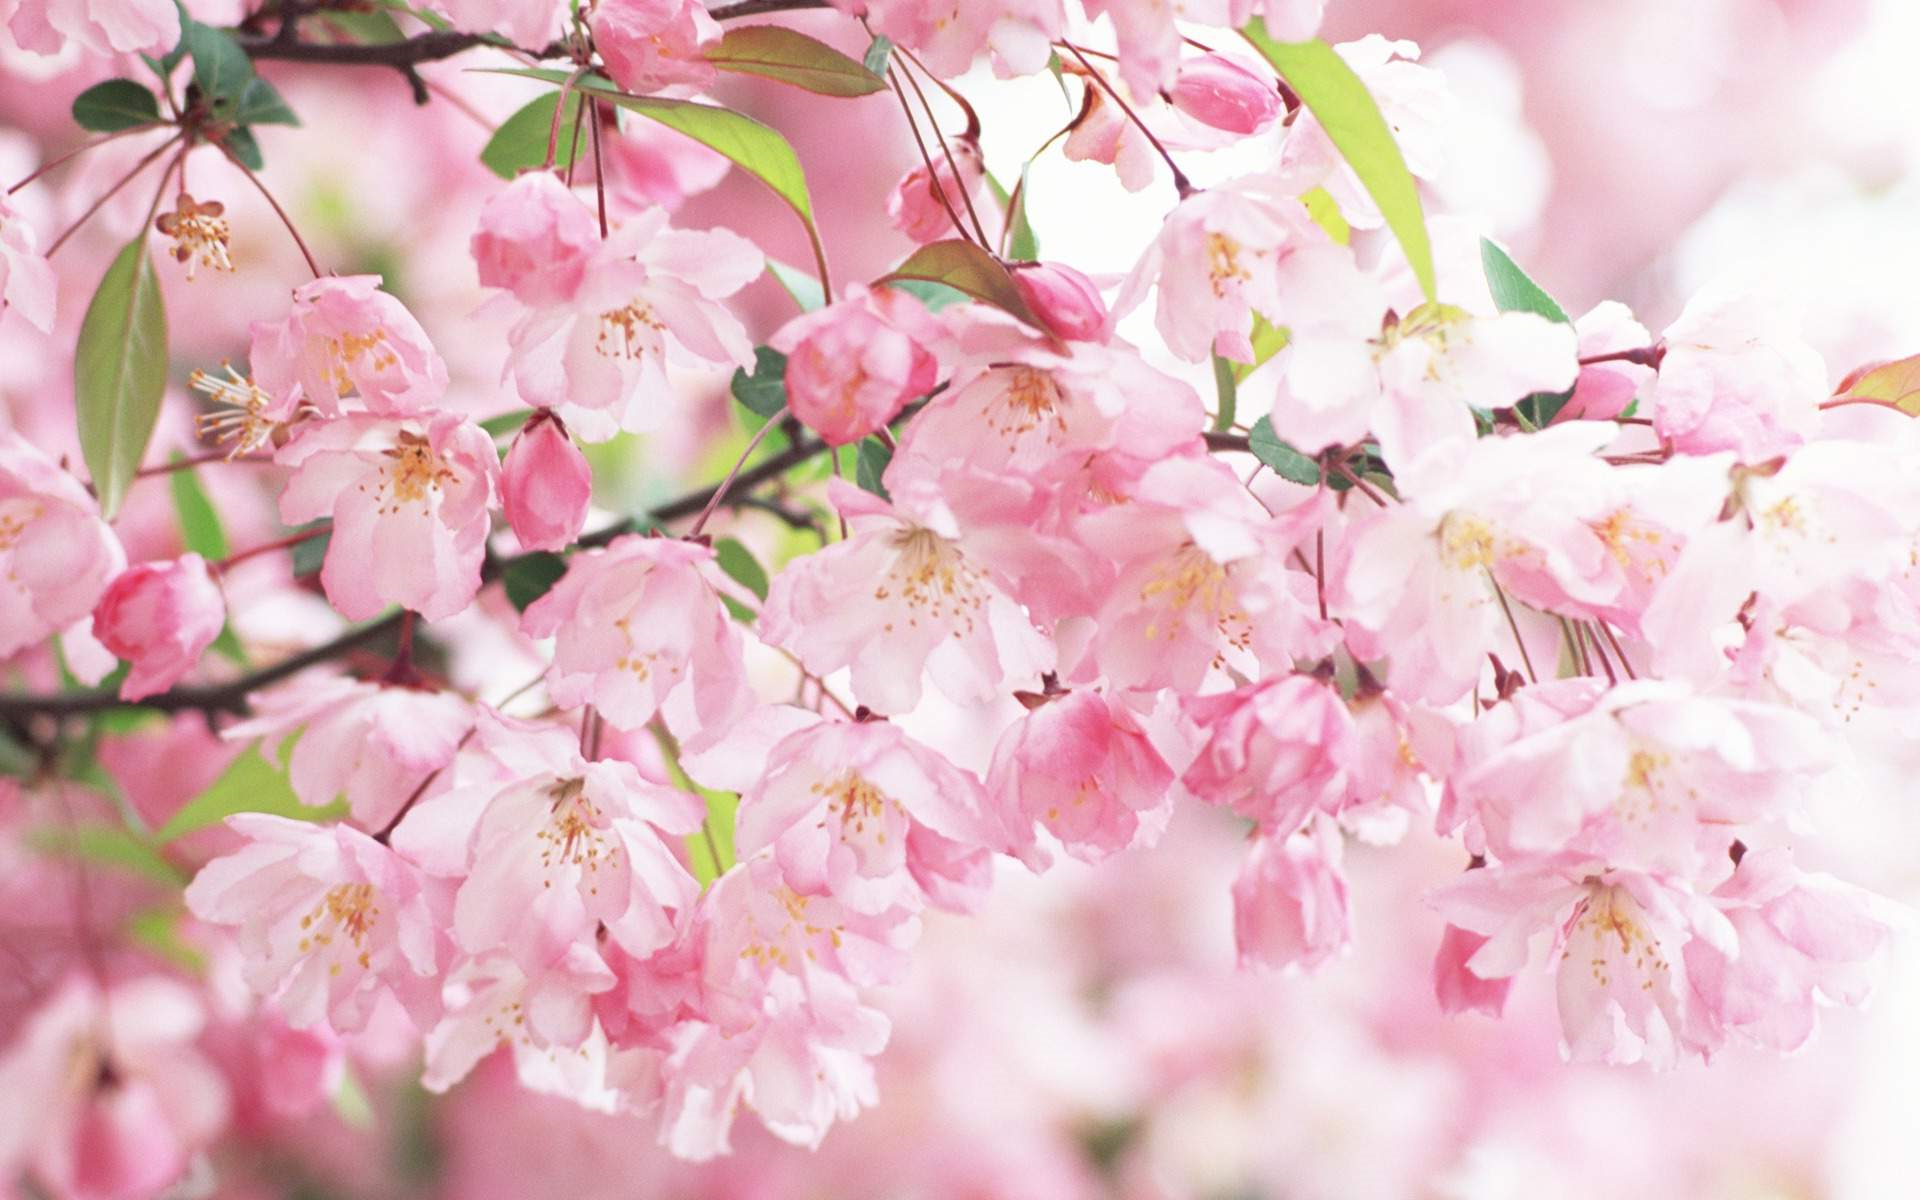 Cherry Blossom Background Tumblr Posted By Zoey Walker